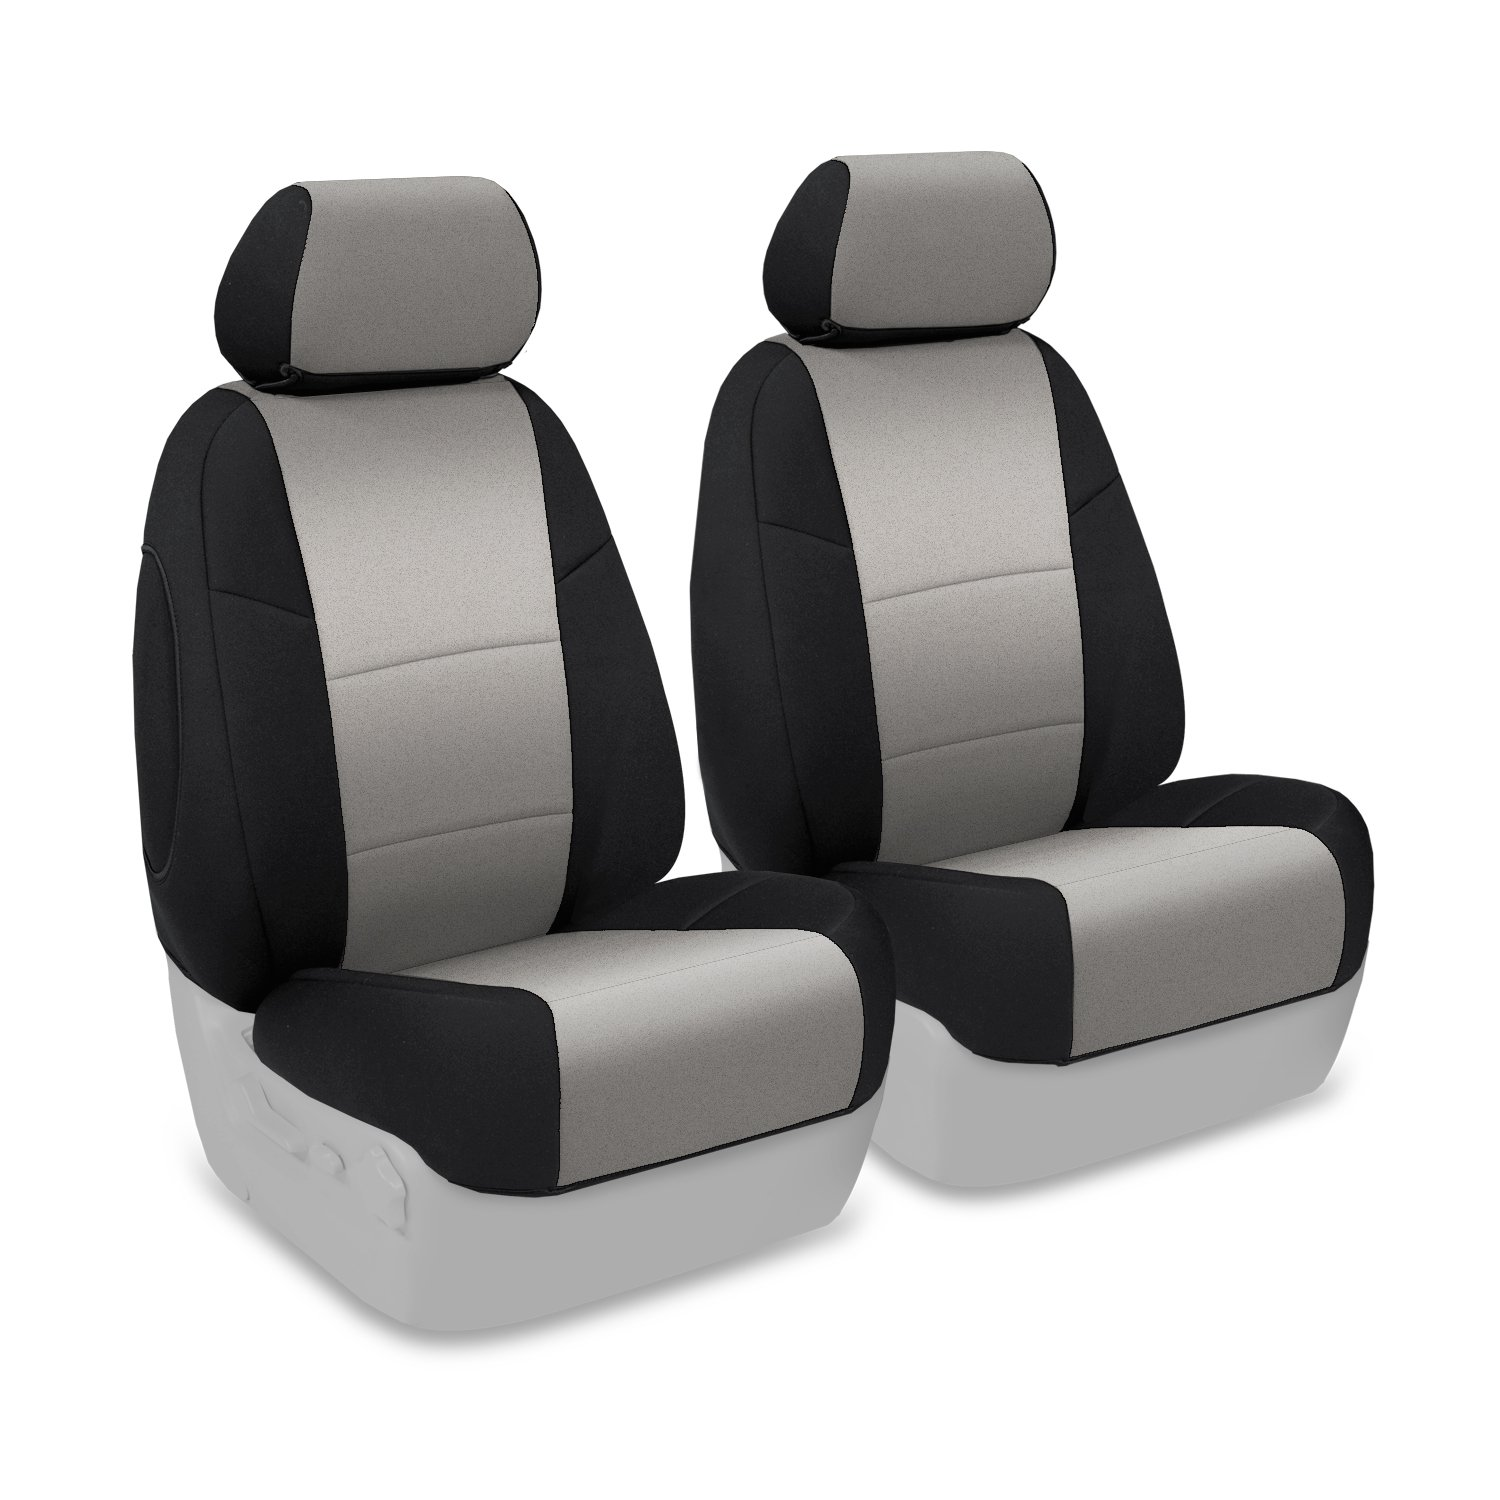 Anyone Tried Non Custom Seat Covers For Your CX 5